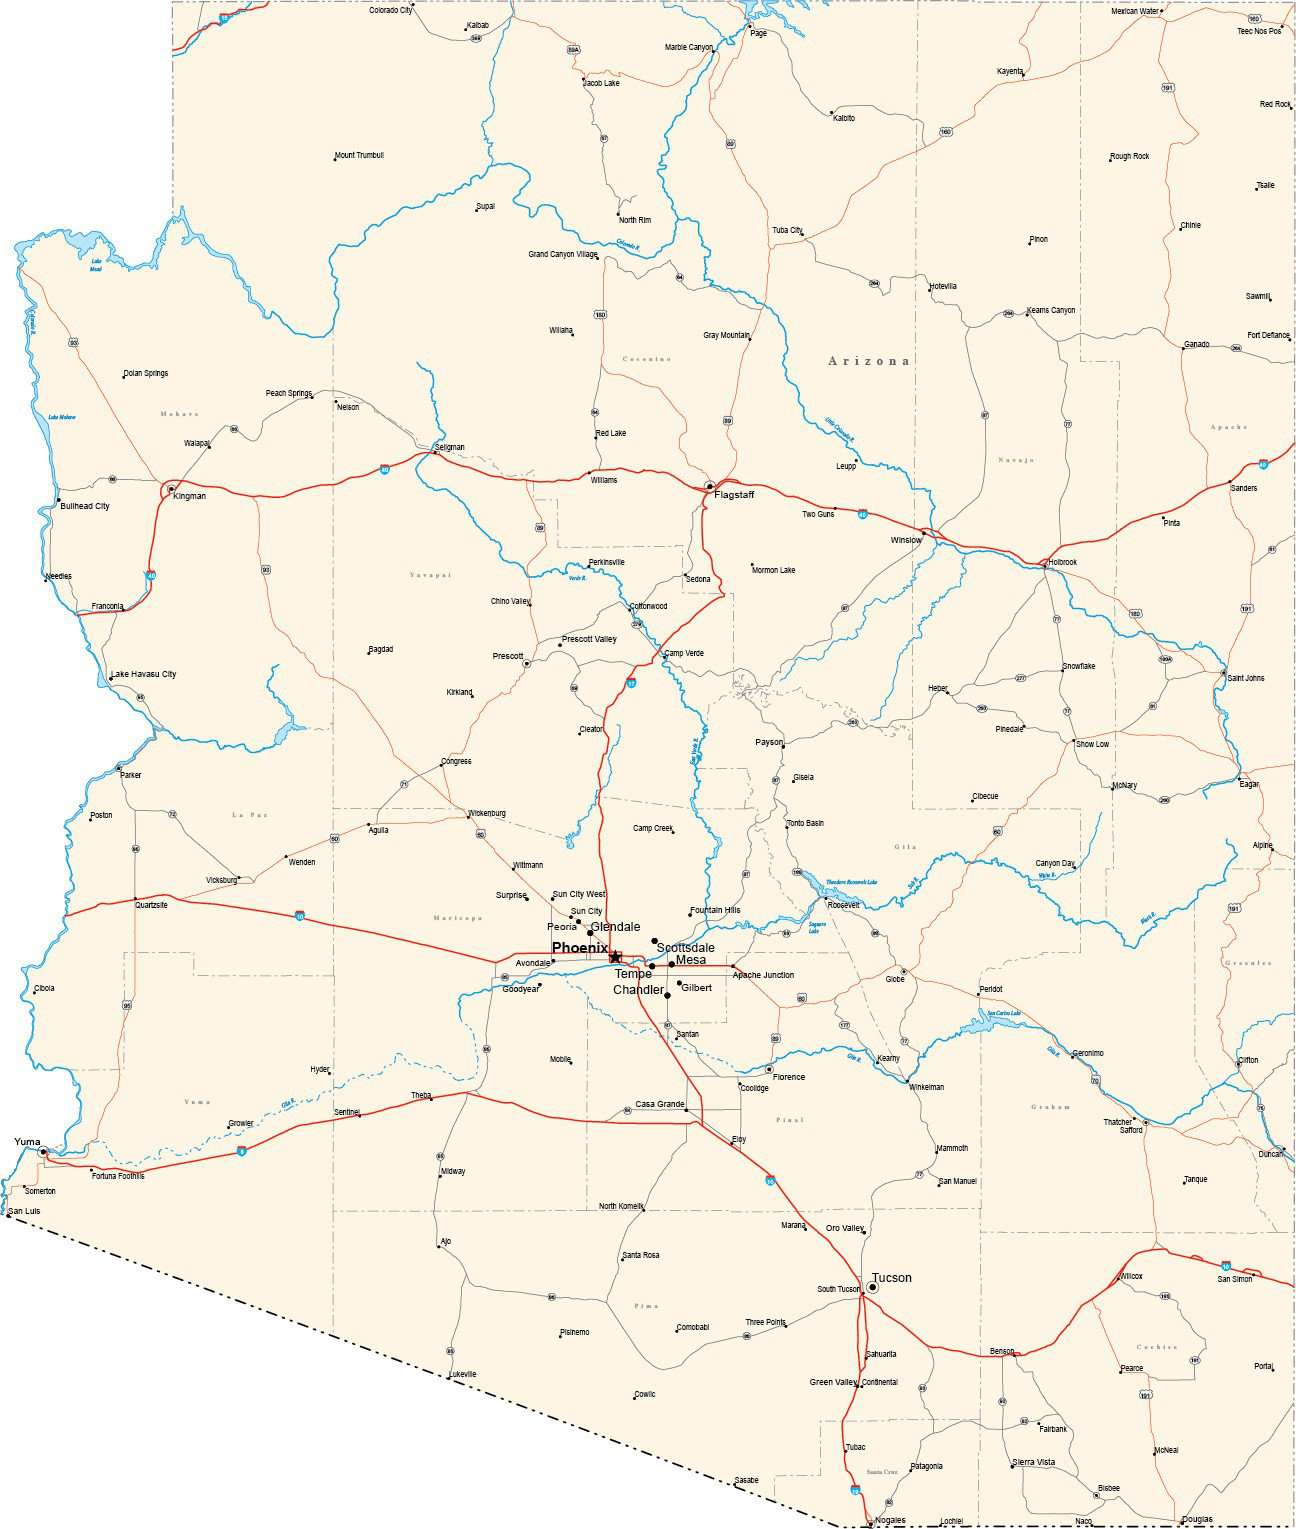 Map Of Arizona With Major Cities.Arizona State Map In Fit Together Style To Match Other States Az Usa